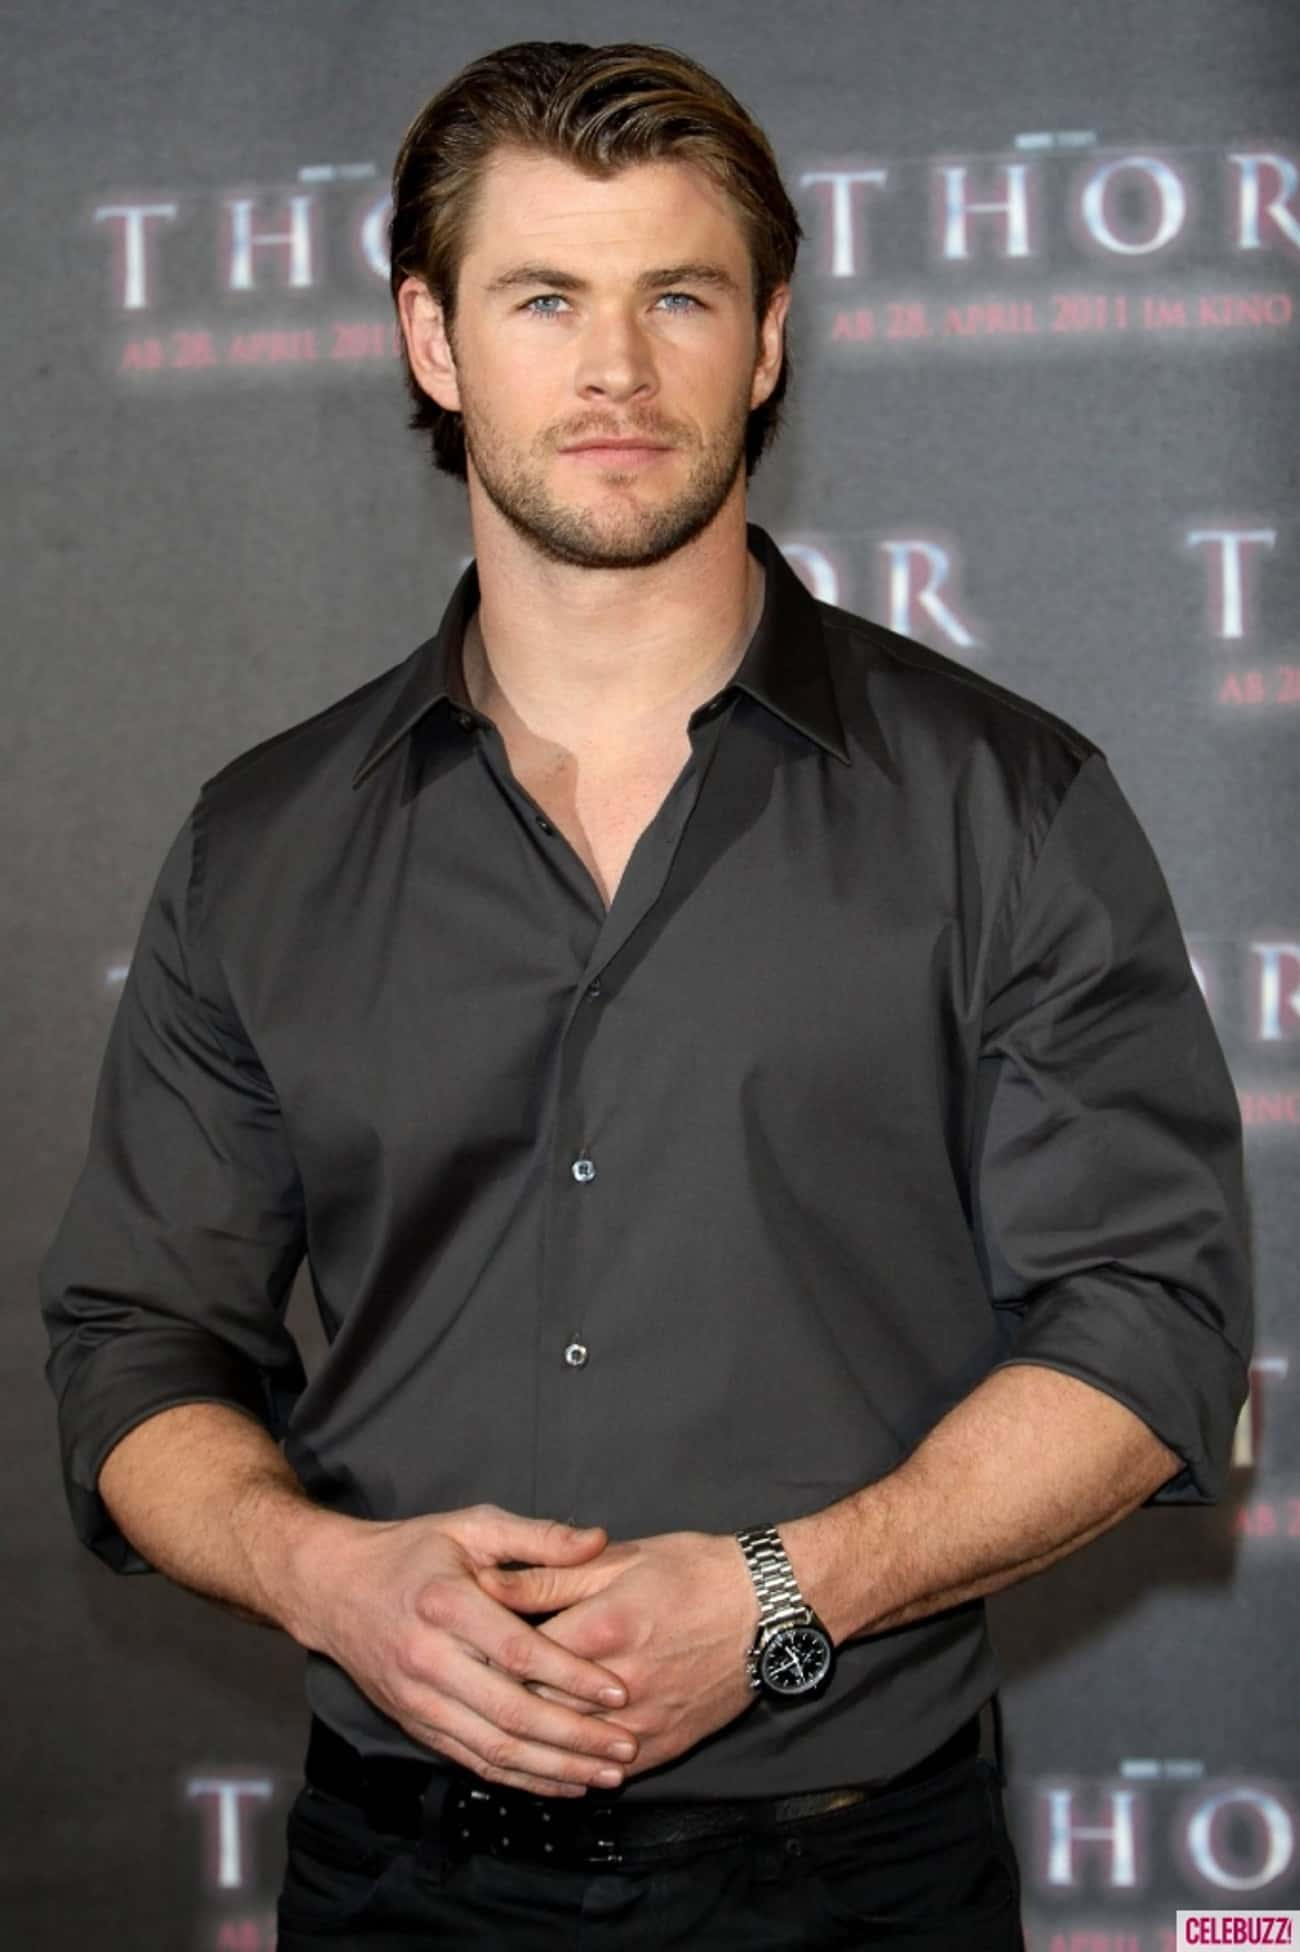 Chris Hemsworth in Black Satin is listed (or ranked) 4 on the list Hot Chris Hemsworth Photos